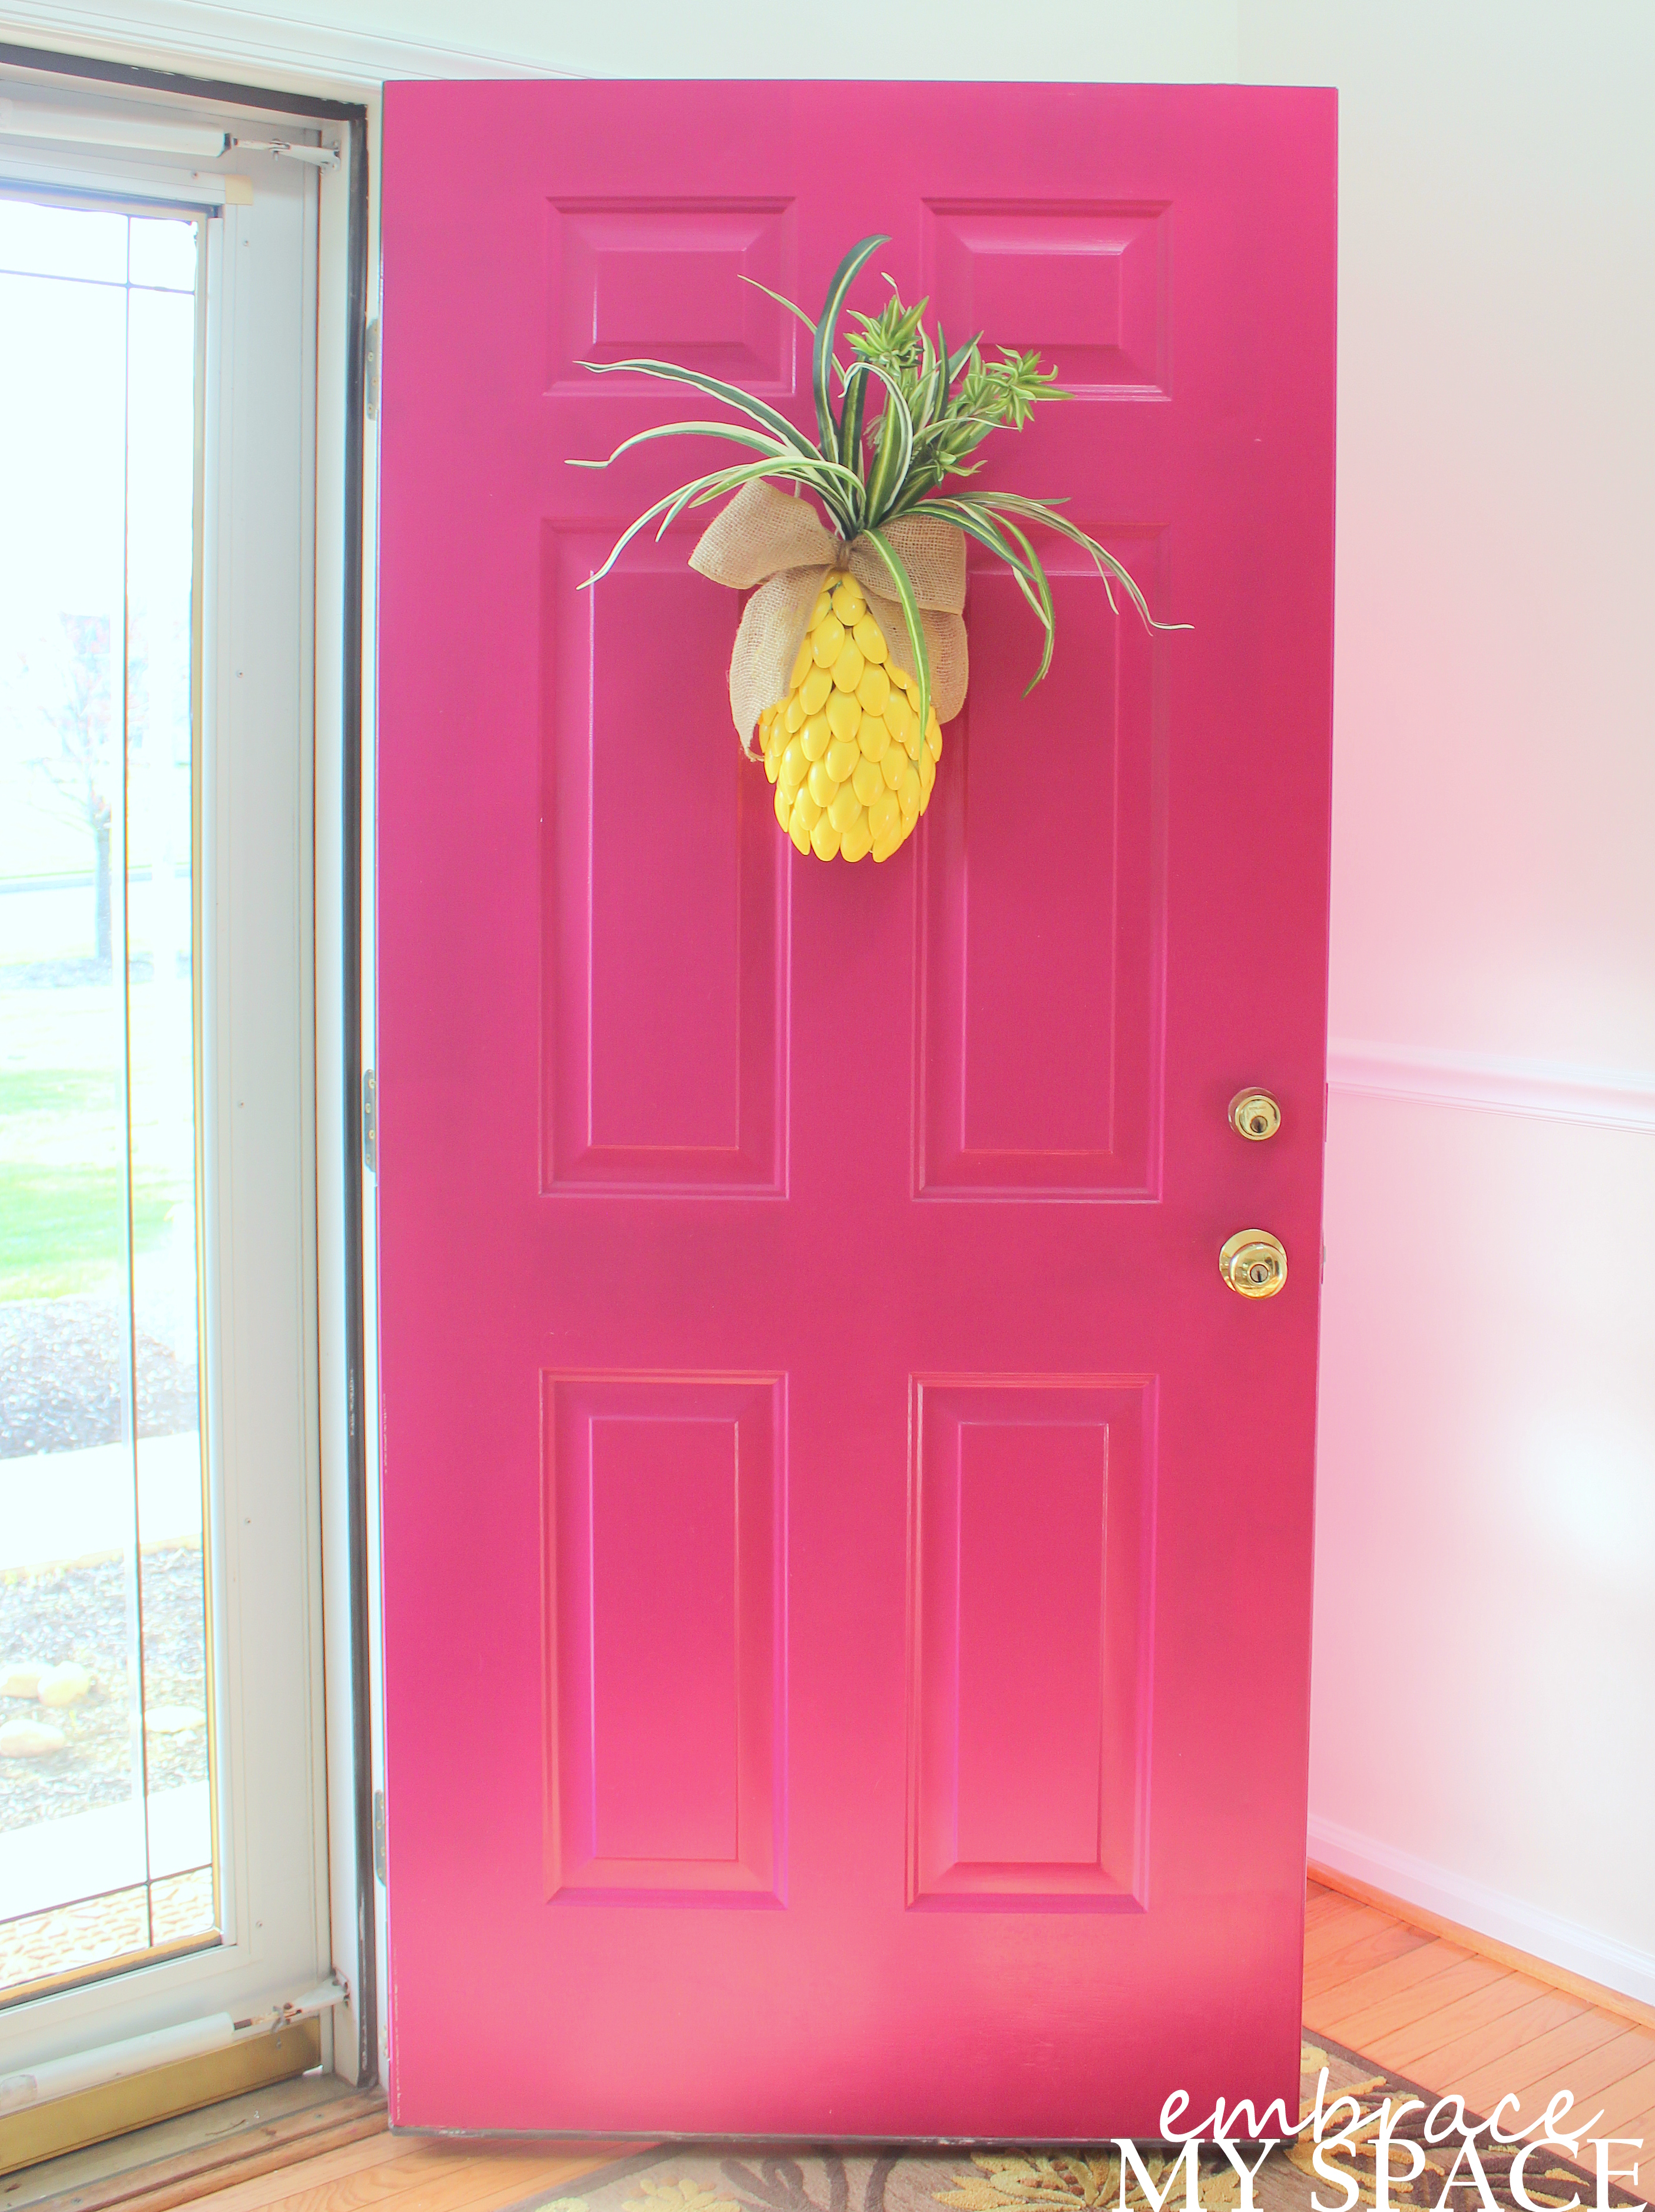 Embrace My Space: Pineapple Door Decor